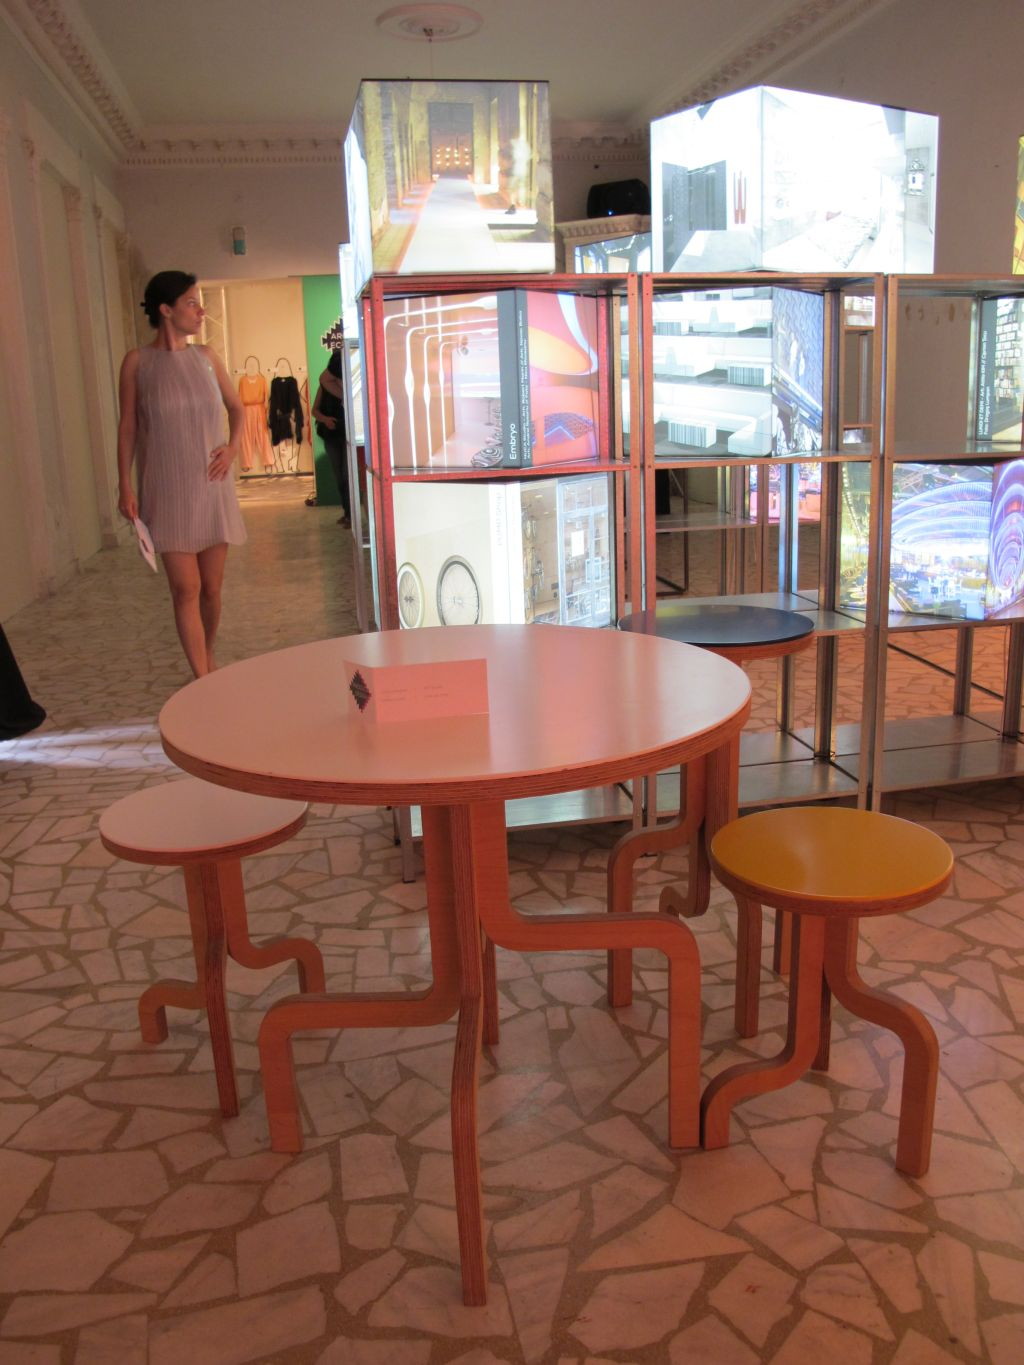 Masa si scaune create de 201 Design Studio prezentate in cadrul Romanian Design Week 2013